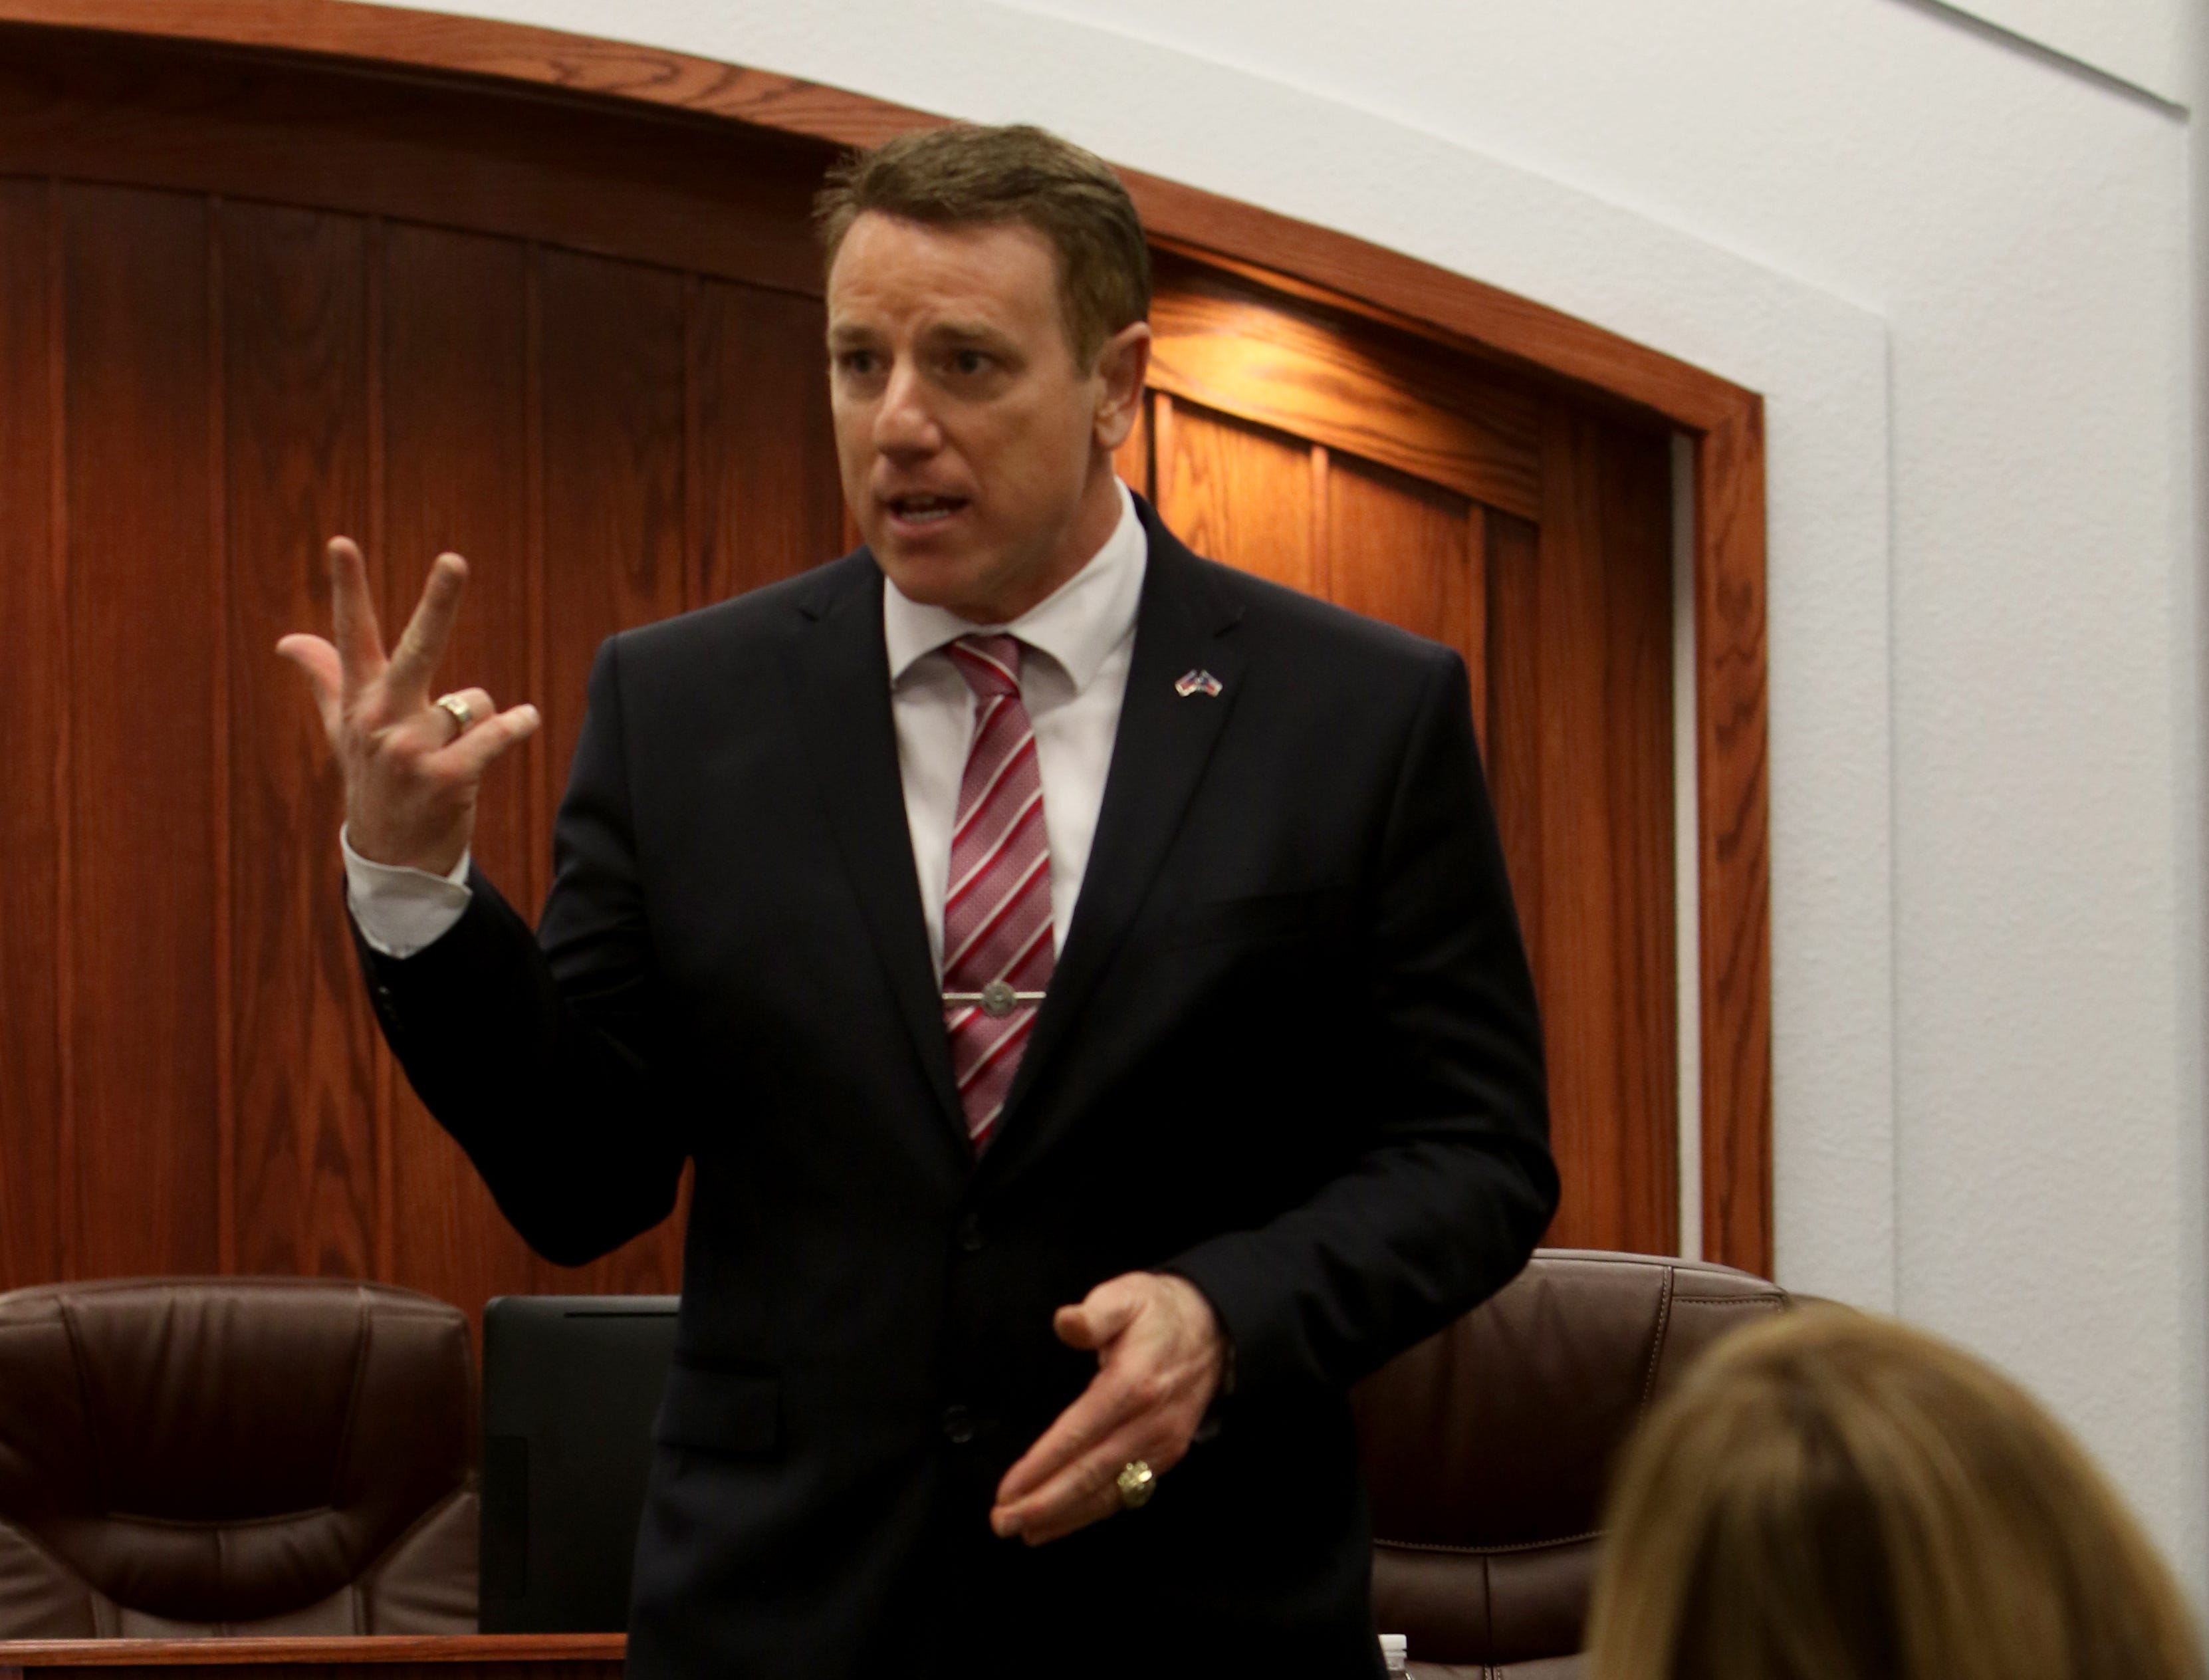 Texas Senator Pat Fallon gives a speech and an update on the 86th Texas Legislative Session during his town hall Saturday, Feb. 16, 2019, at the Clay County Courthouse Annex in Henrietta.